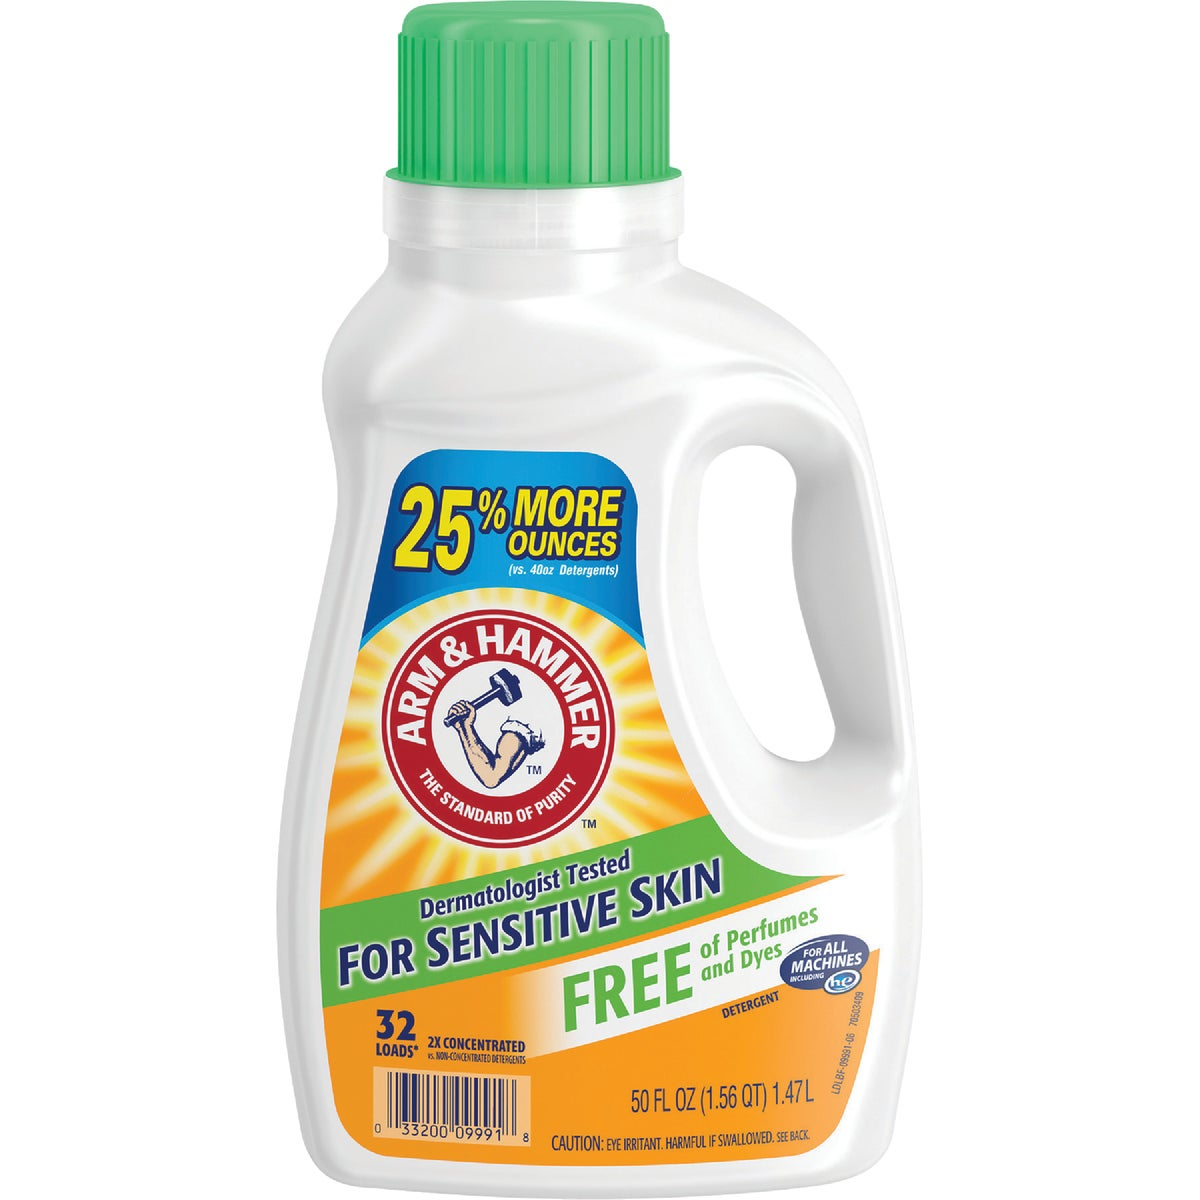 50OZ LAUNDRY DETERGENT - 09991 by Church & Dwight Co